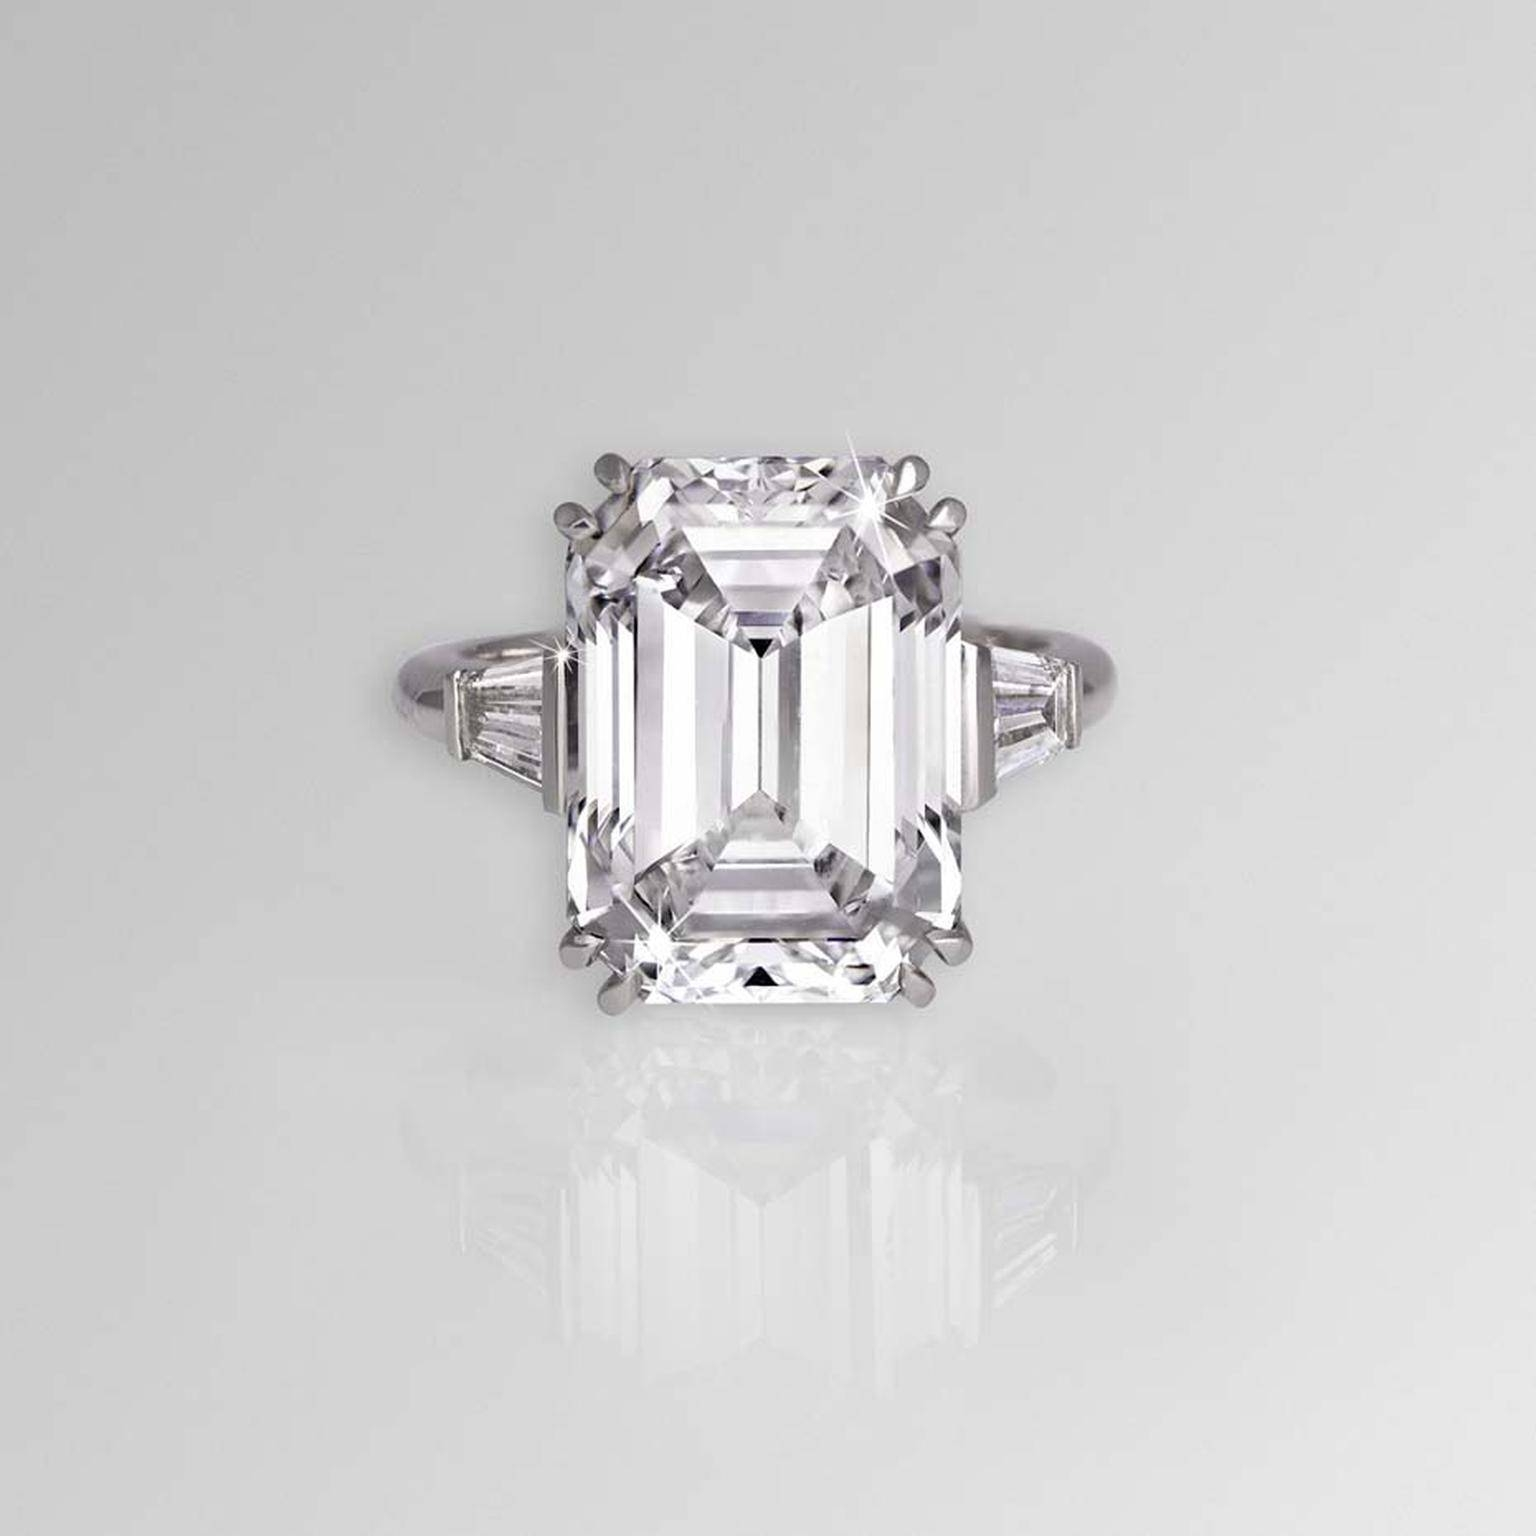 11.04Ct Emerald Cut Diamond Engagement Ring | David Morris | The Within Emerald Cut Engagement Rings Baguettes (Gallery 2 of 15)